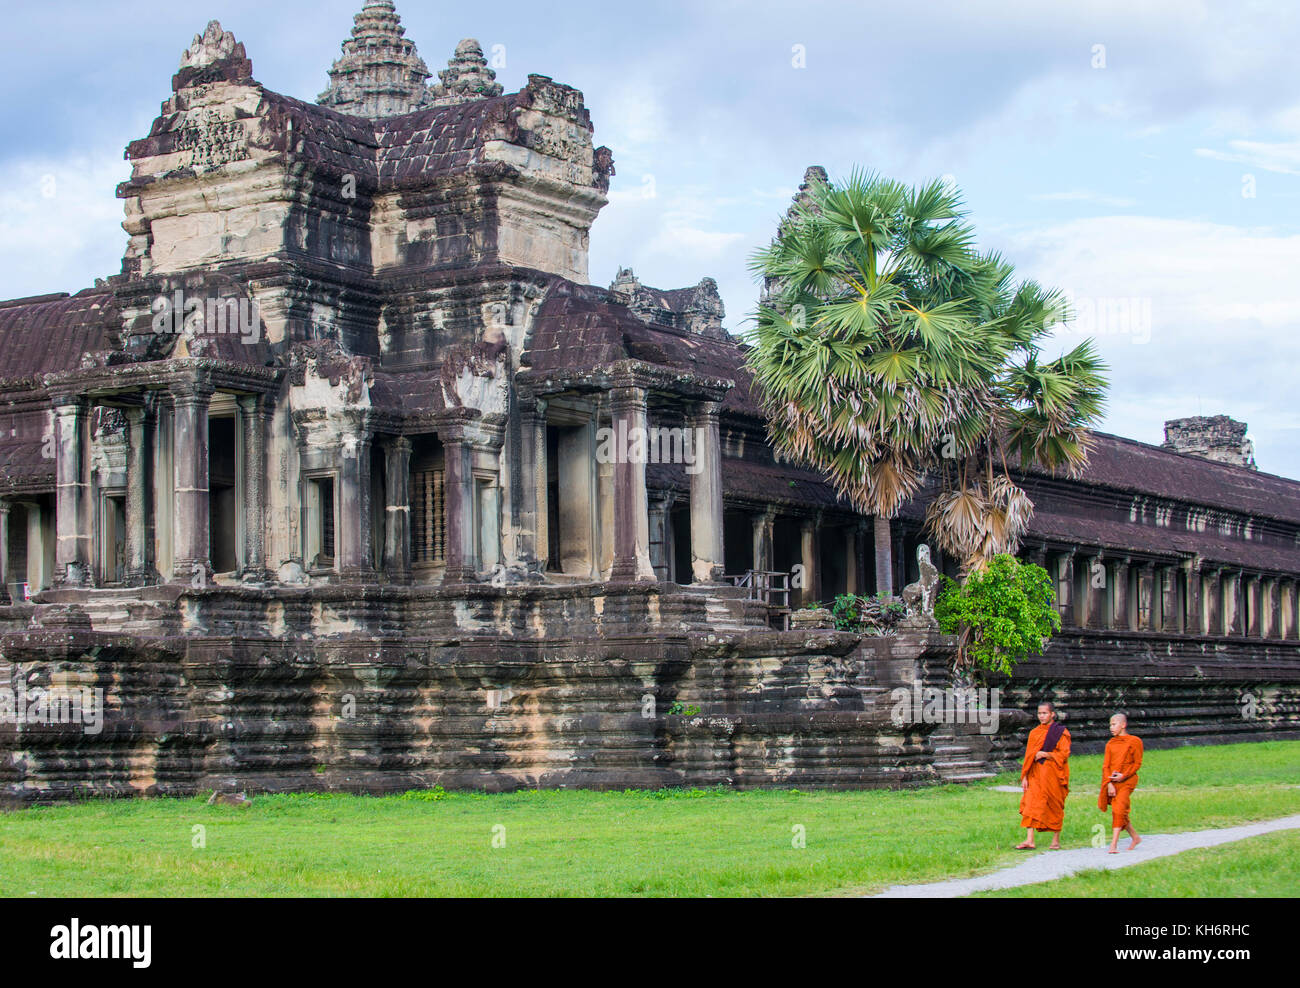 Buddhist monks at the Angkor Wat Temple in Siem Reap Cambodia Stock Photo